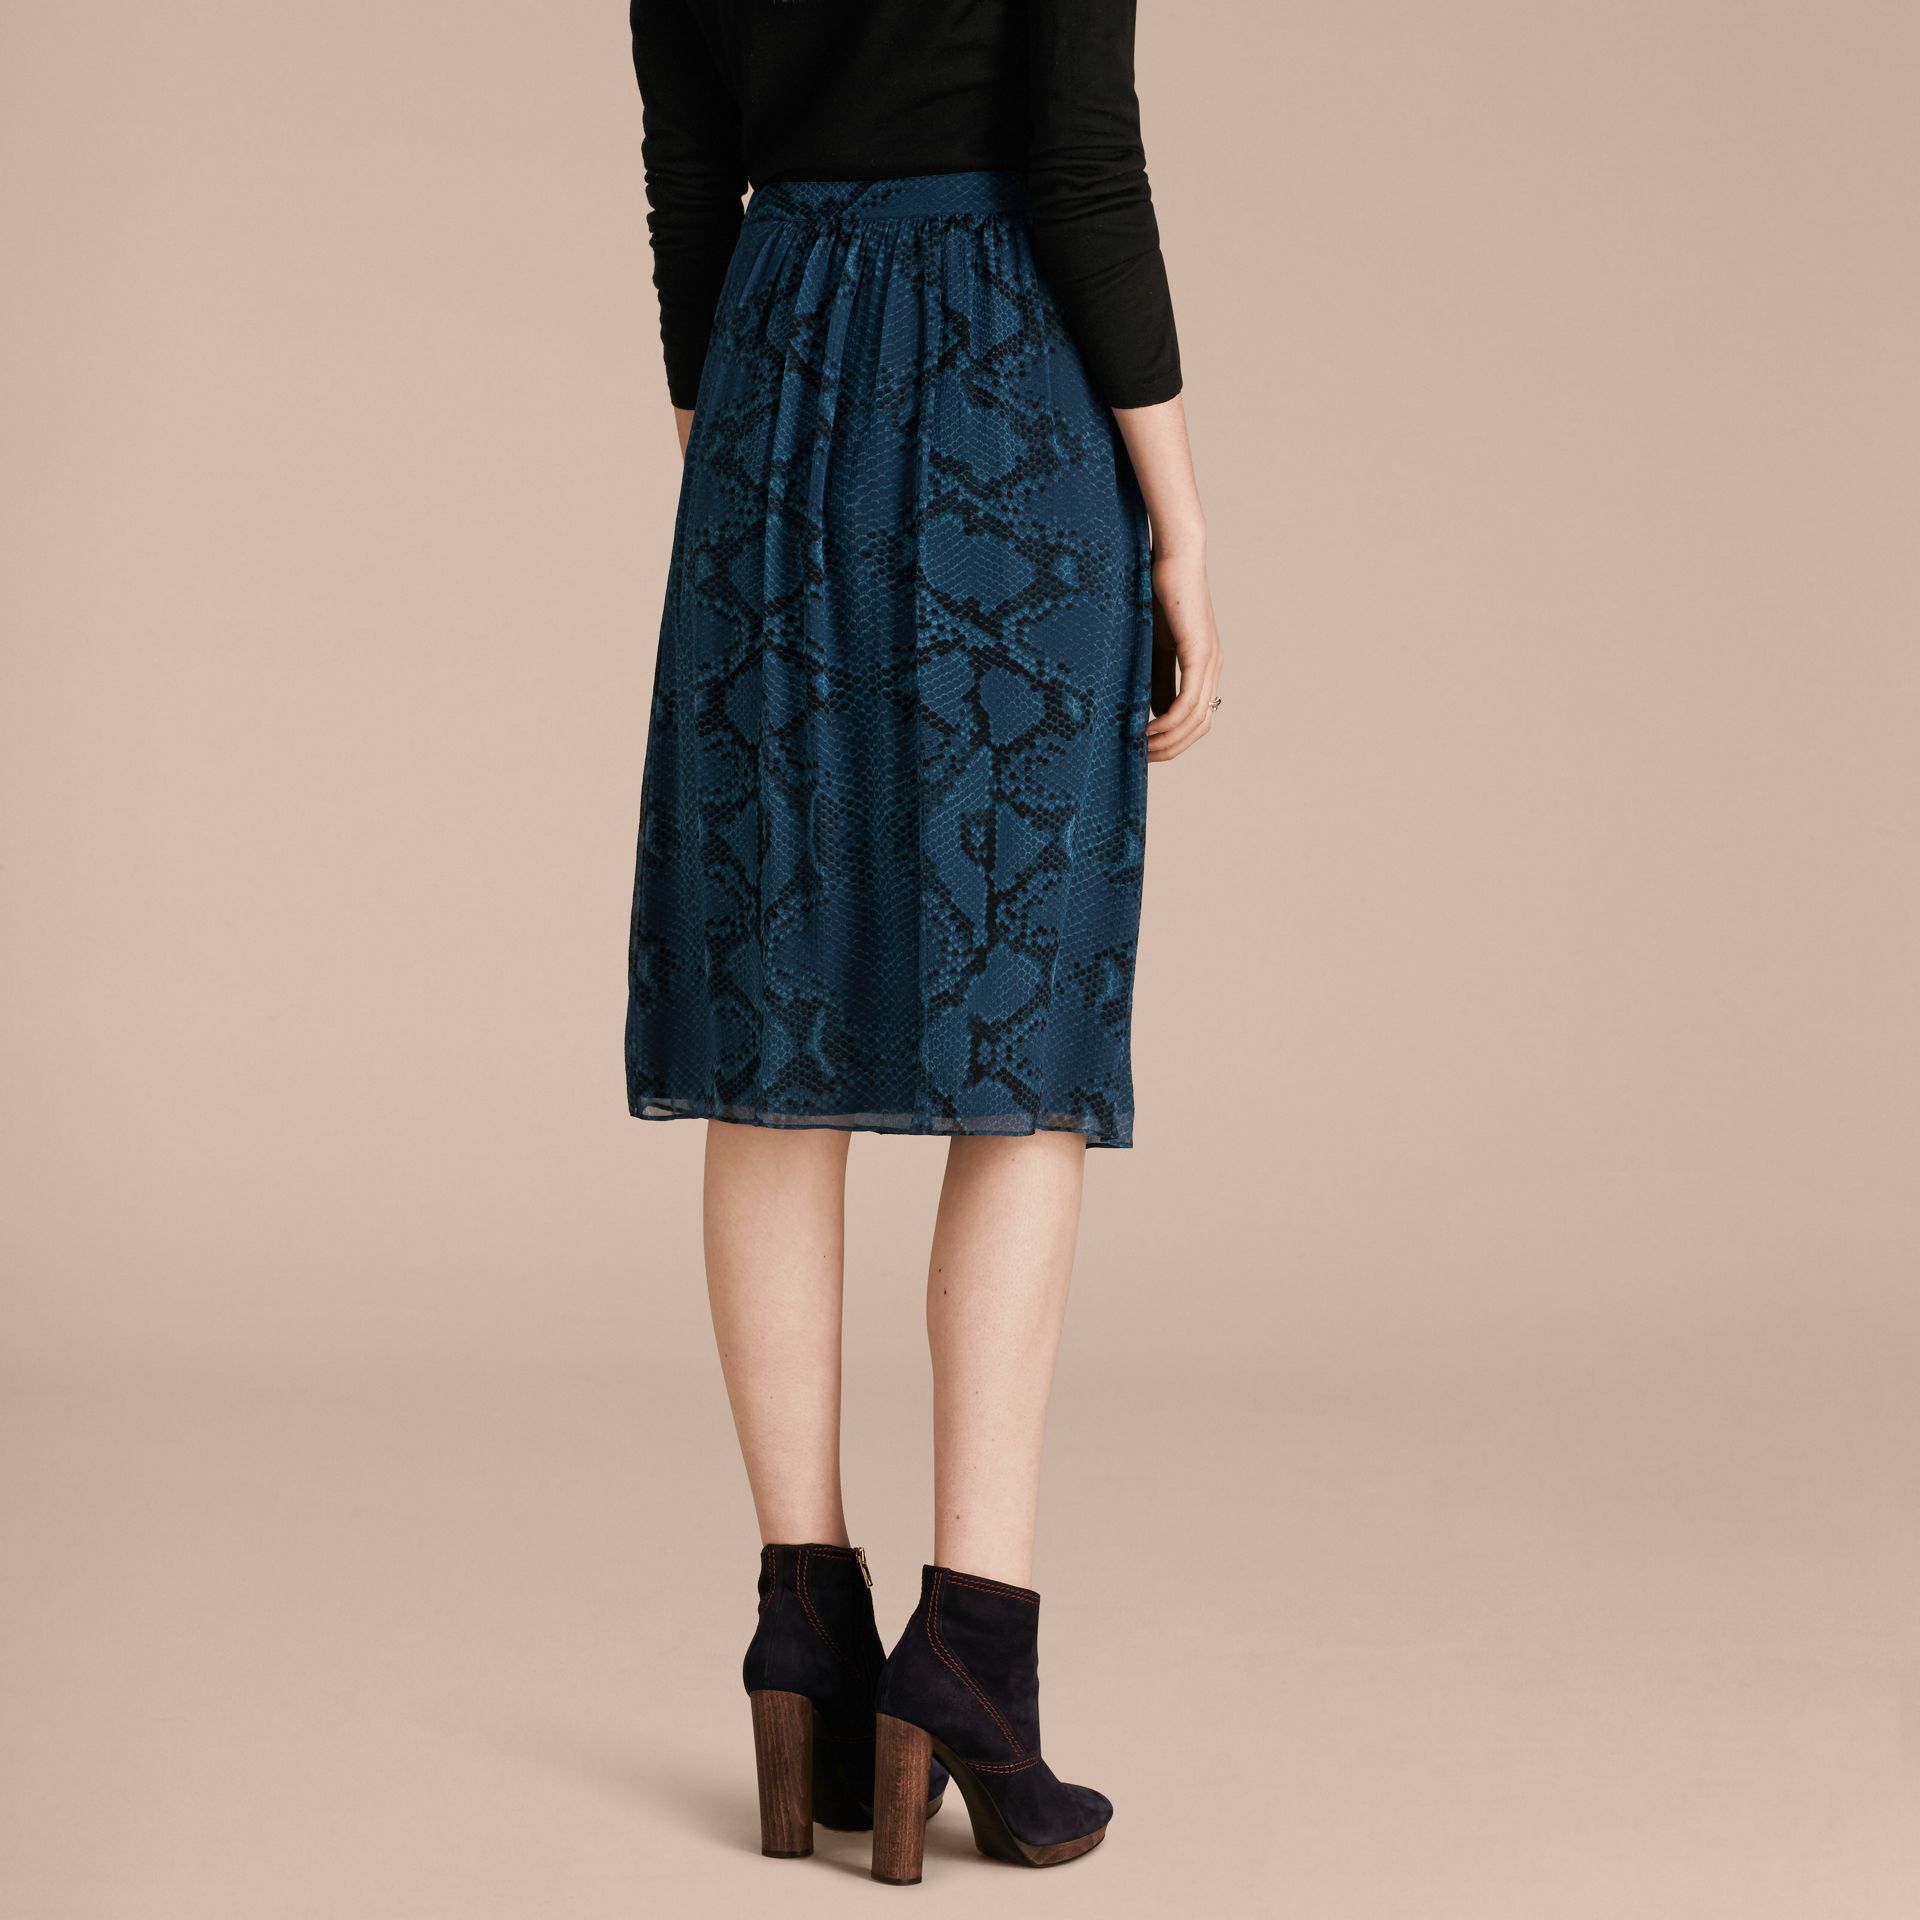 Mineral blue Python Print Silk Crepon Skirt - gallery image 3